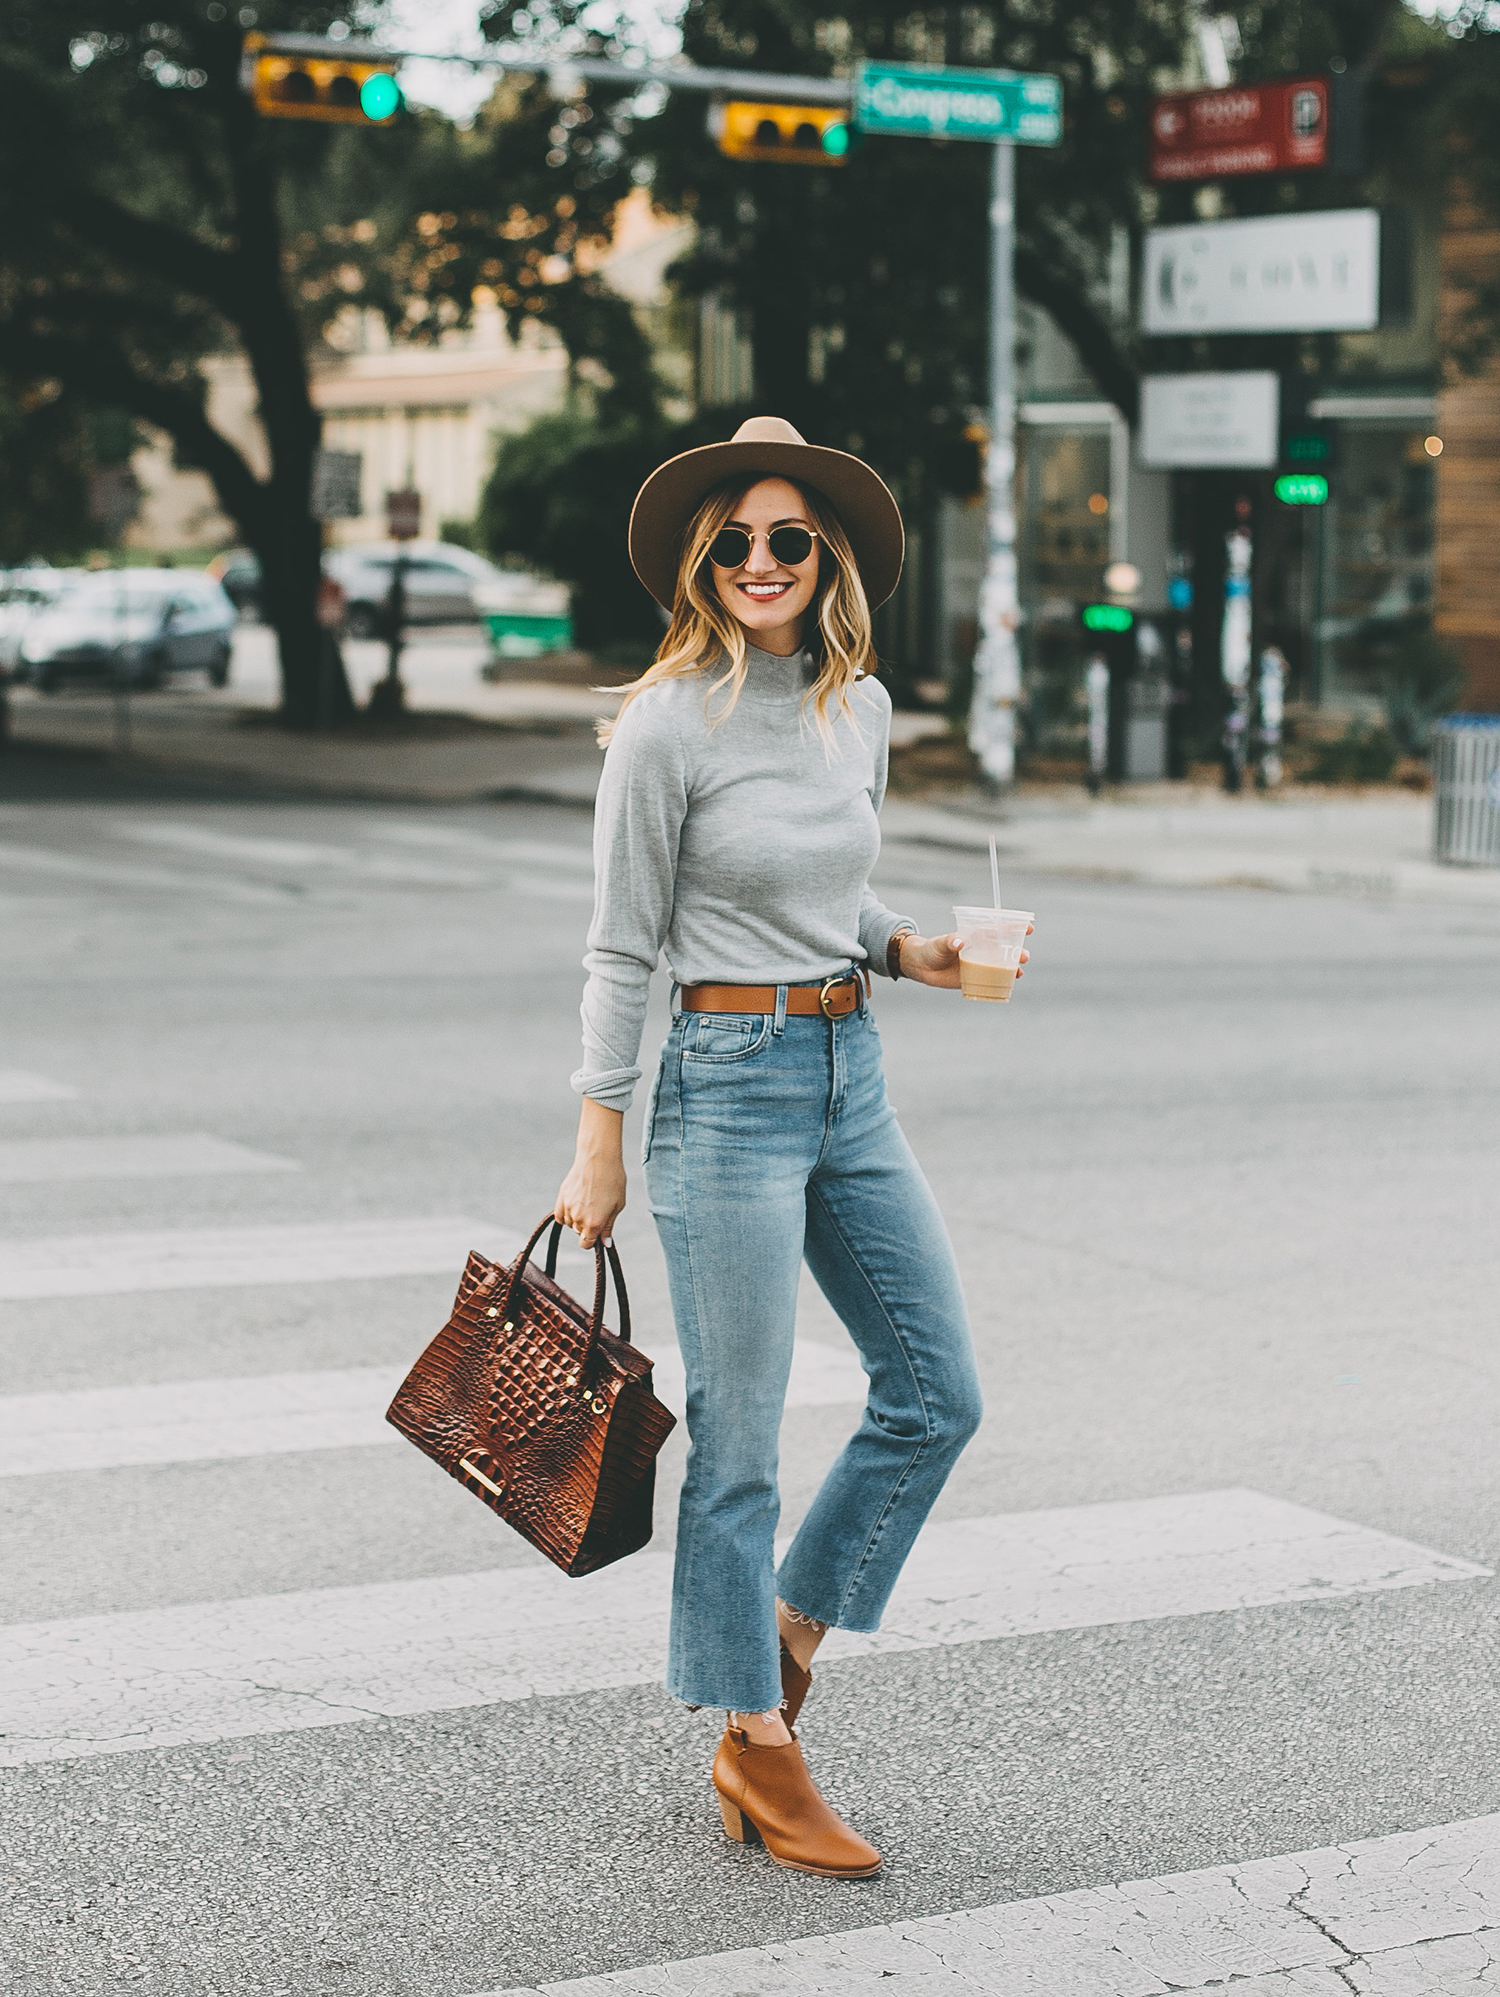 livvyland-blog-olivia-watson-south-congress-avenue-austin-texas-fashion-life-style-blogger-bdg-high-waist-crop-flare-jeans-2